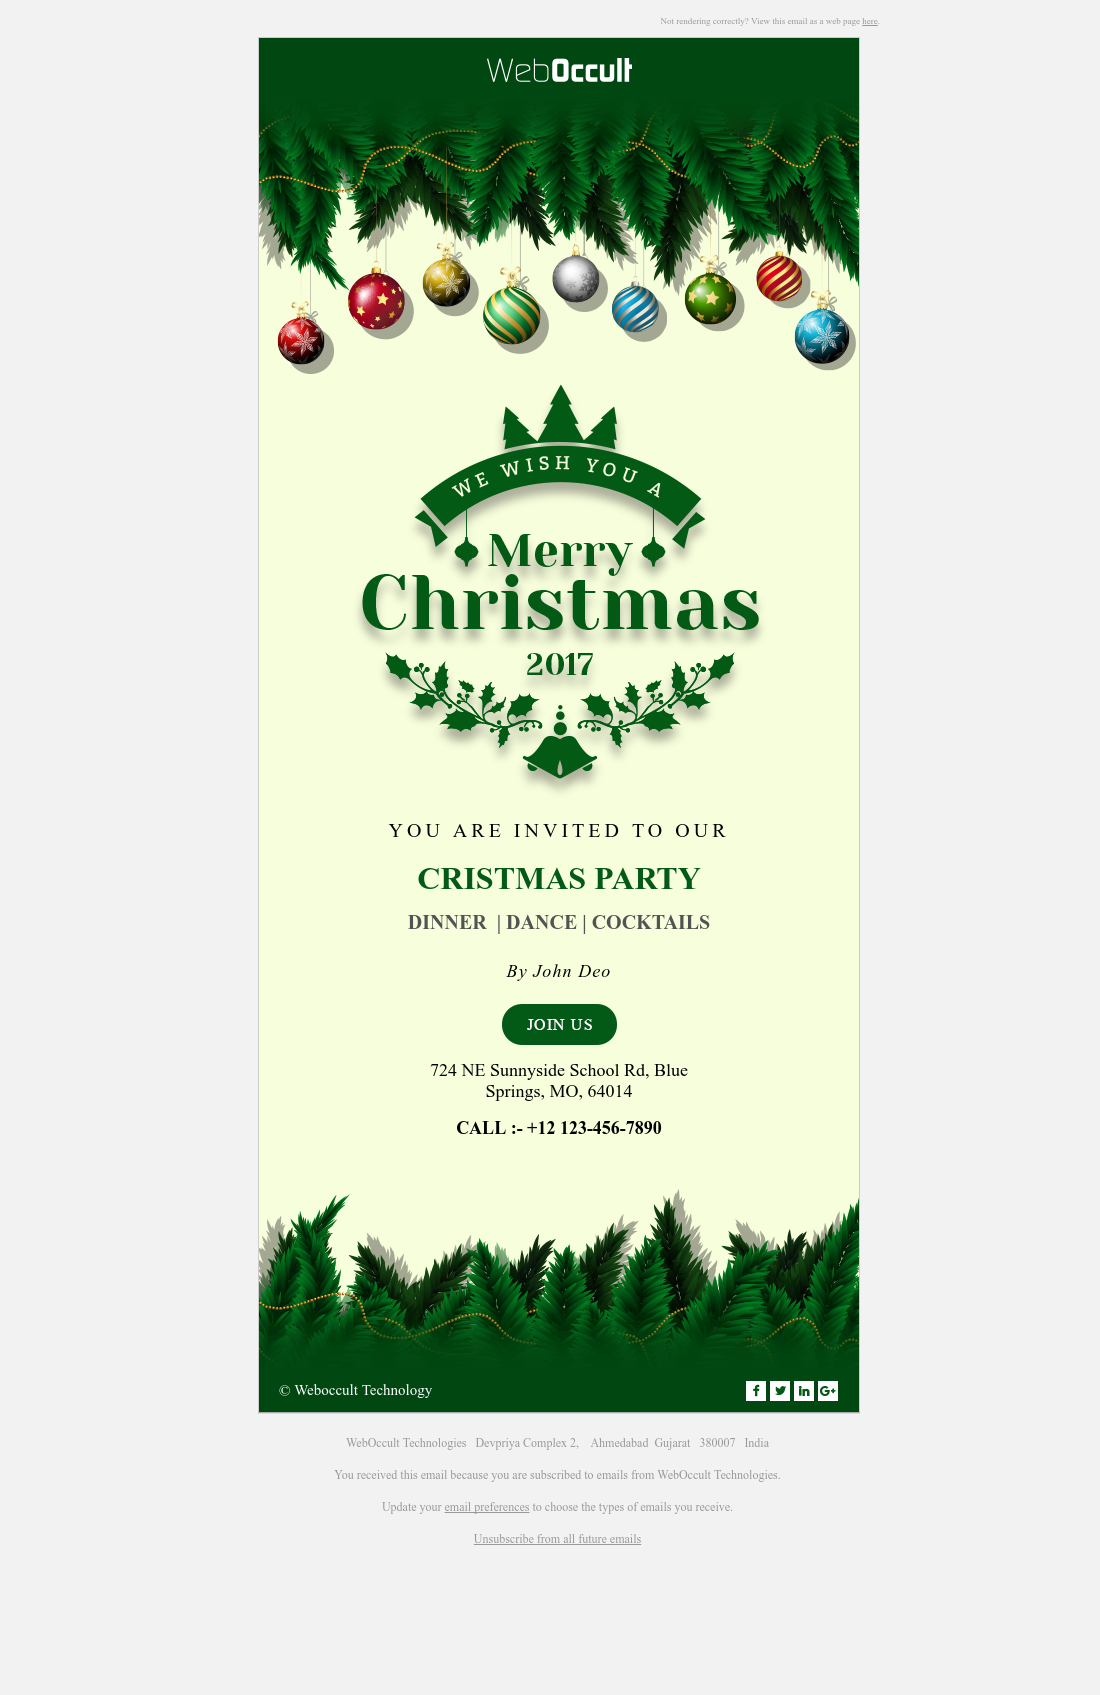 Christmas Party Invitation Email Template | HubSpot